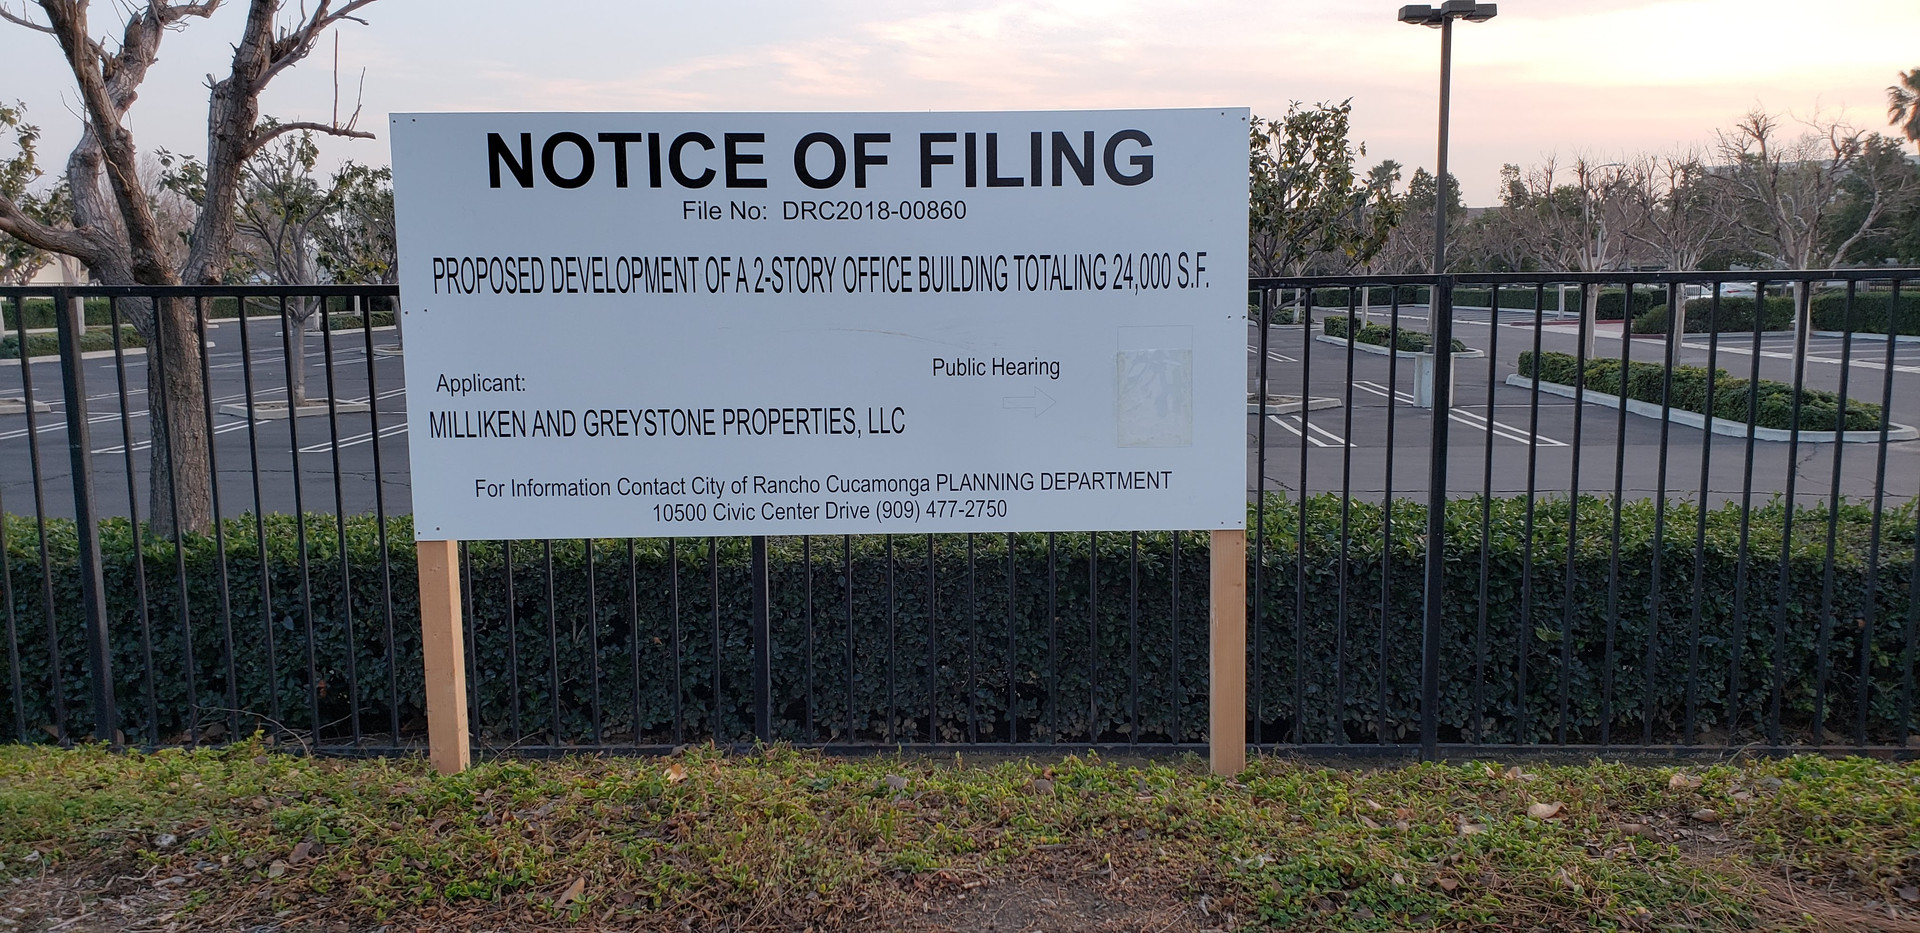 Notice of Filing.jpg